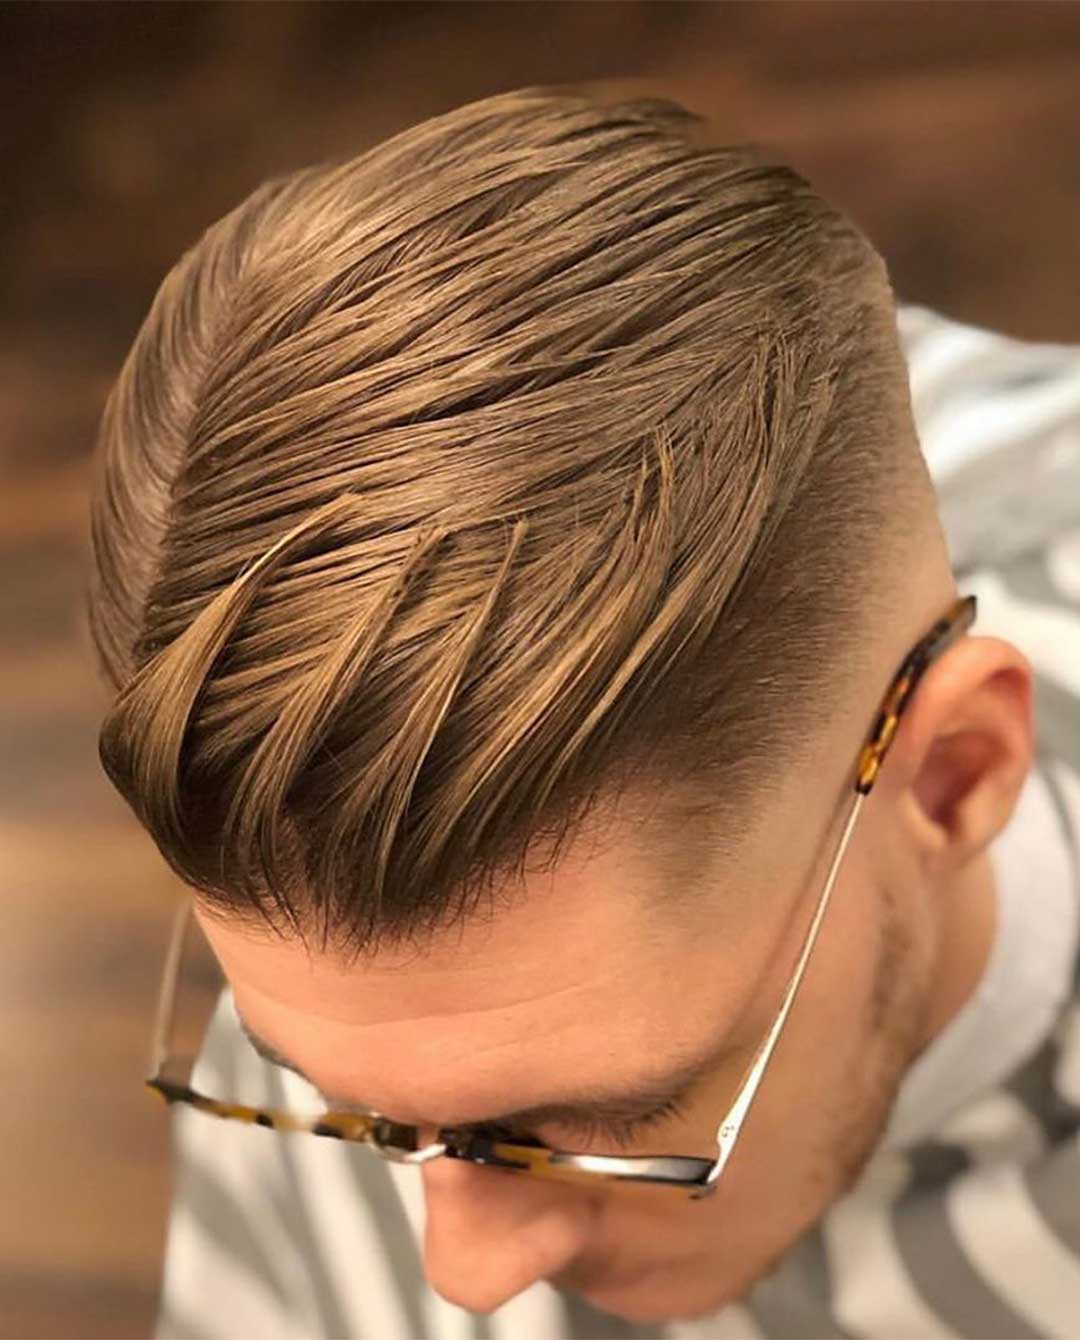 The Textured Comb-Over